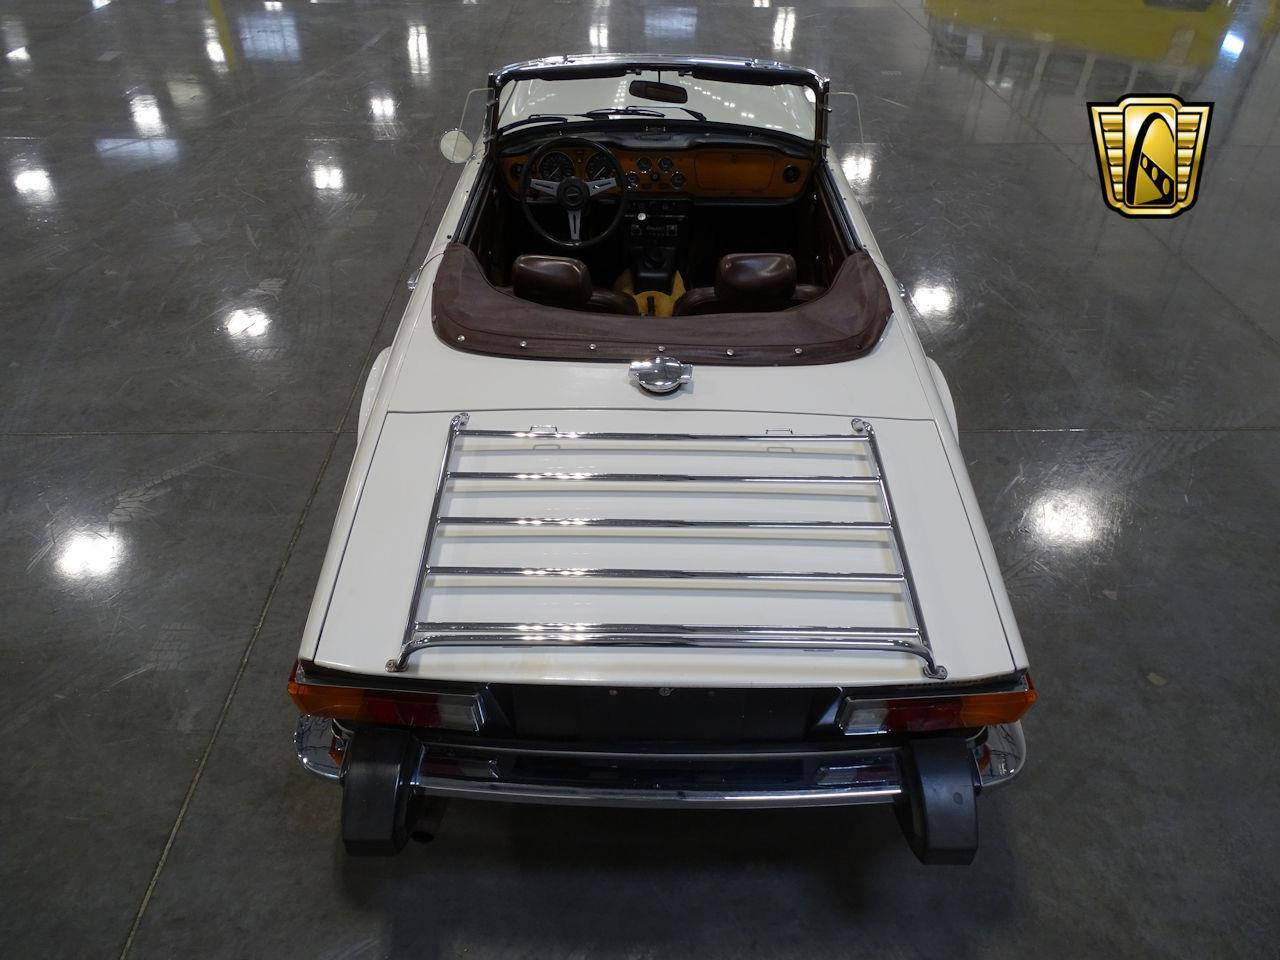 Large Picture of 1974 TR6 located in Deer Valley Arizona Offered by Gateway Classic Cars - Scottsdale - MCYM